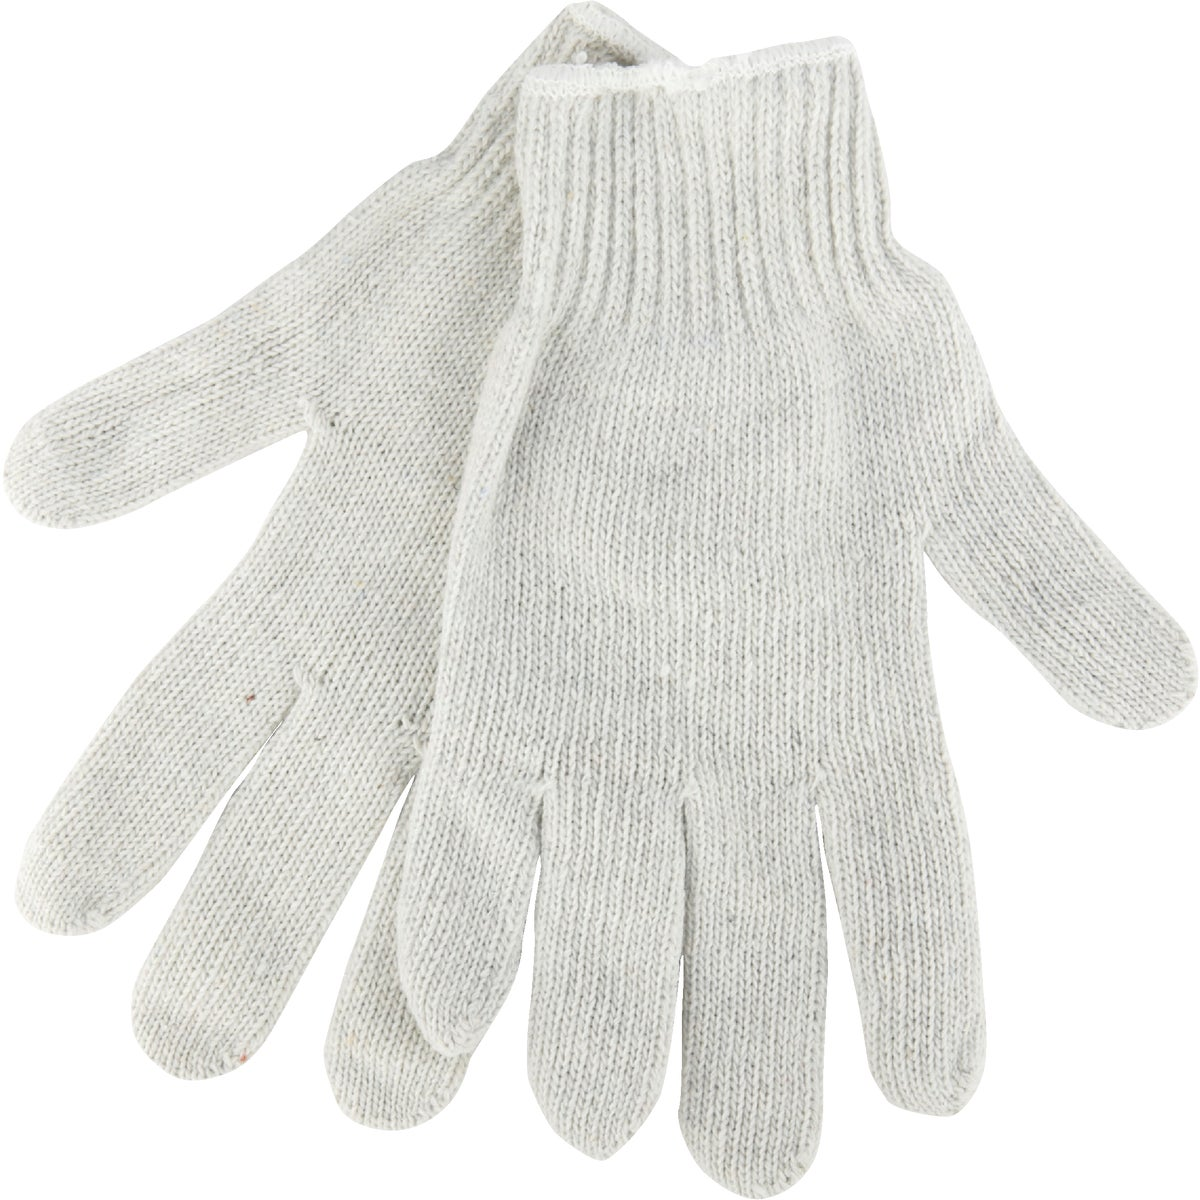 SML STRING KNIT GLOVE - 759753 by Do it Best